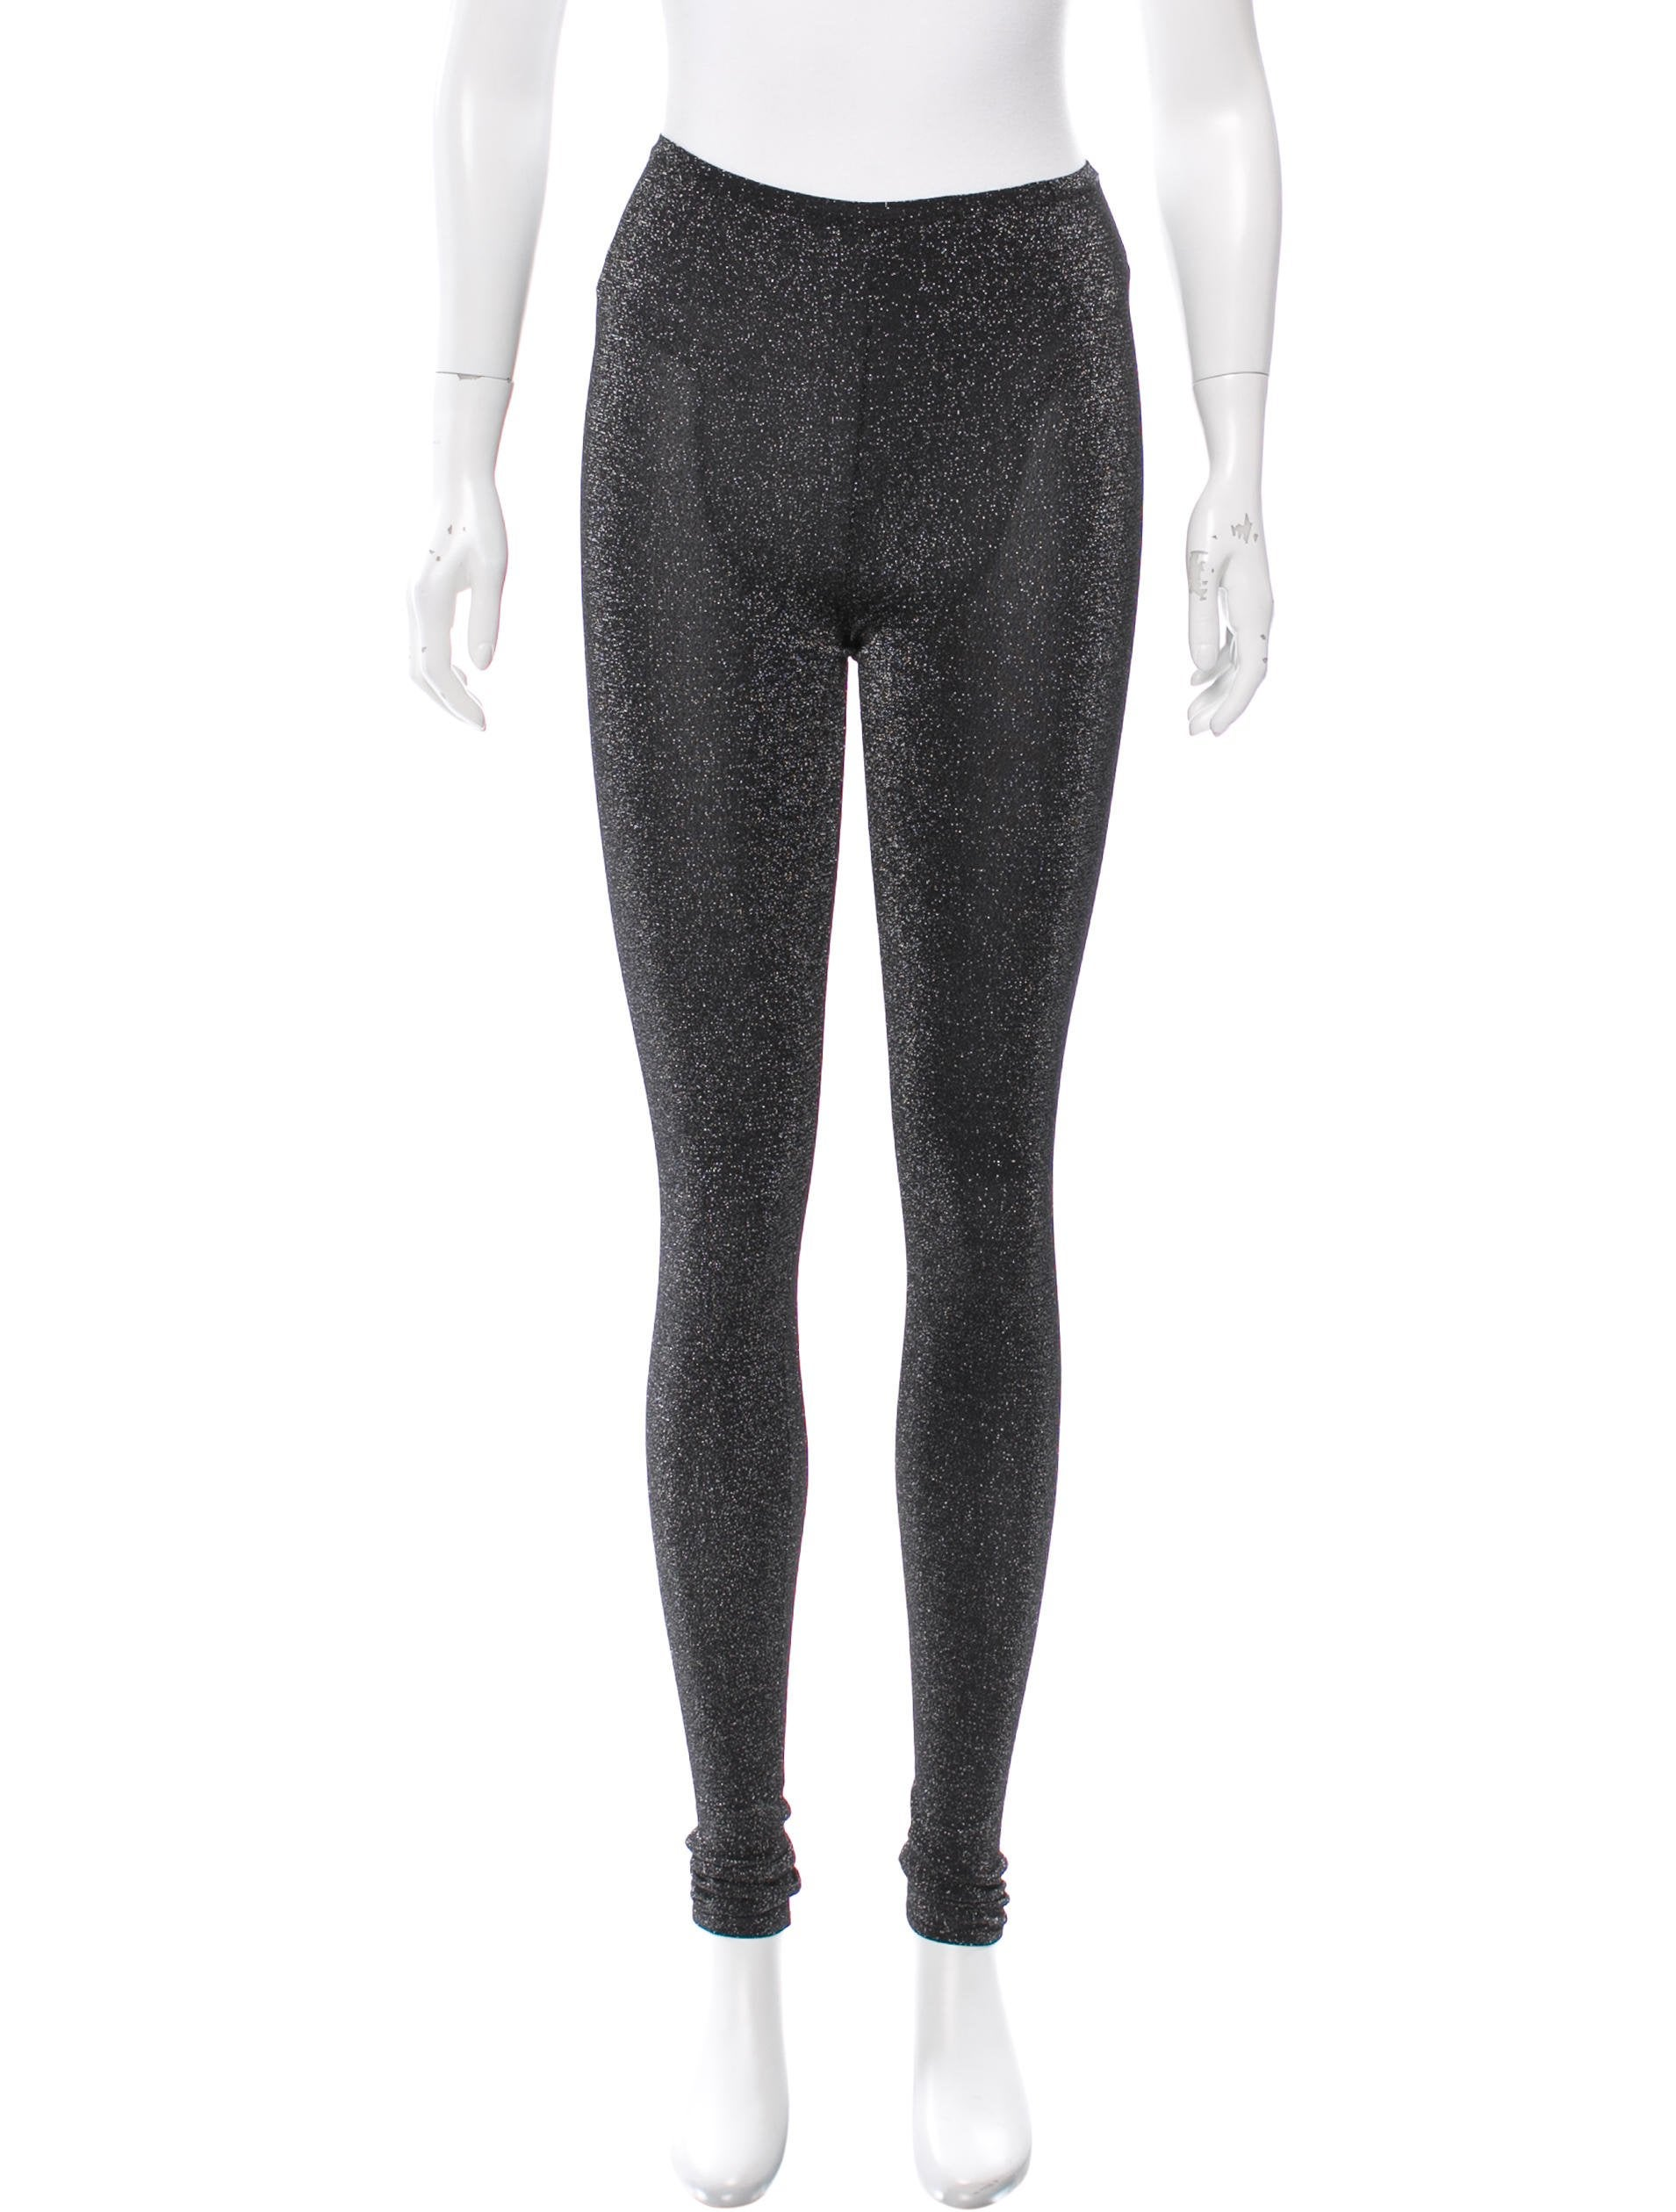 Gucci Metallic Skinny Leggings - Clothing - GUC154176 | The RealReal